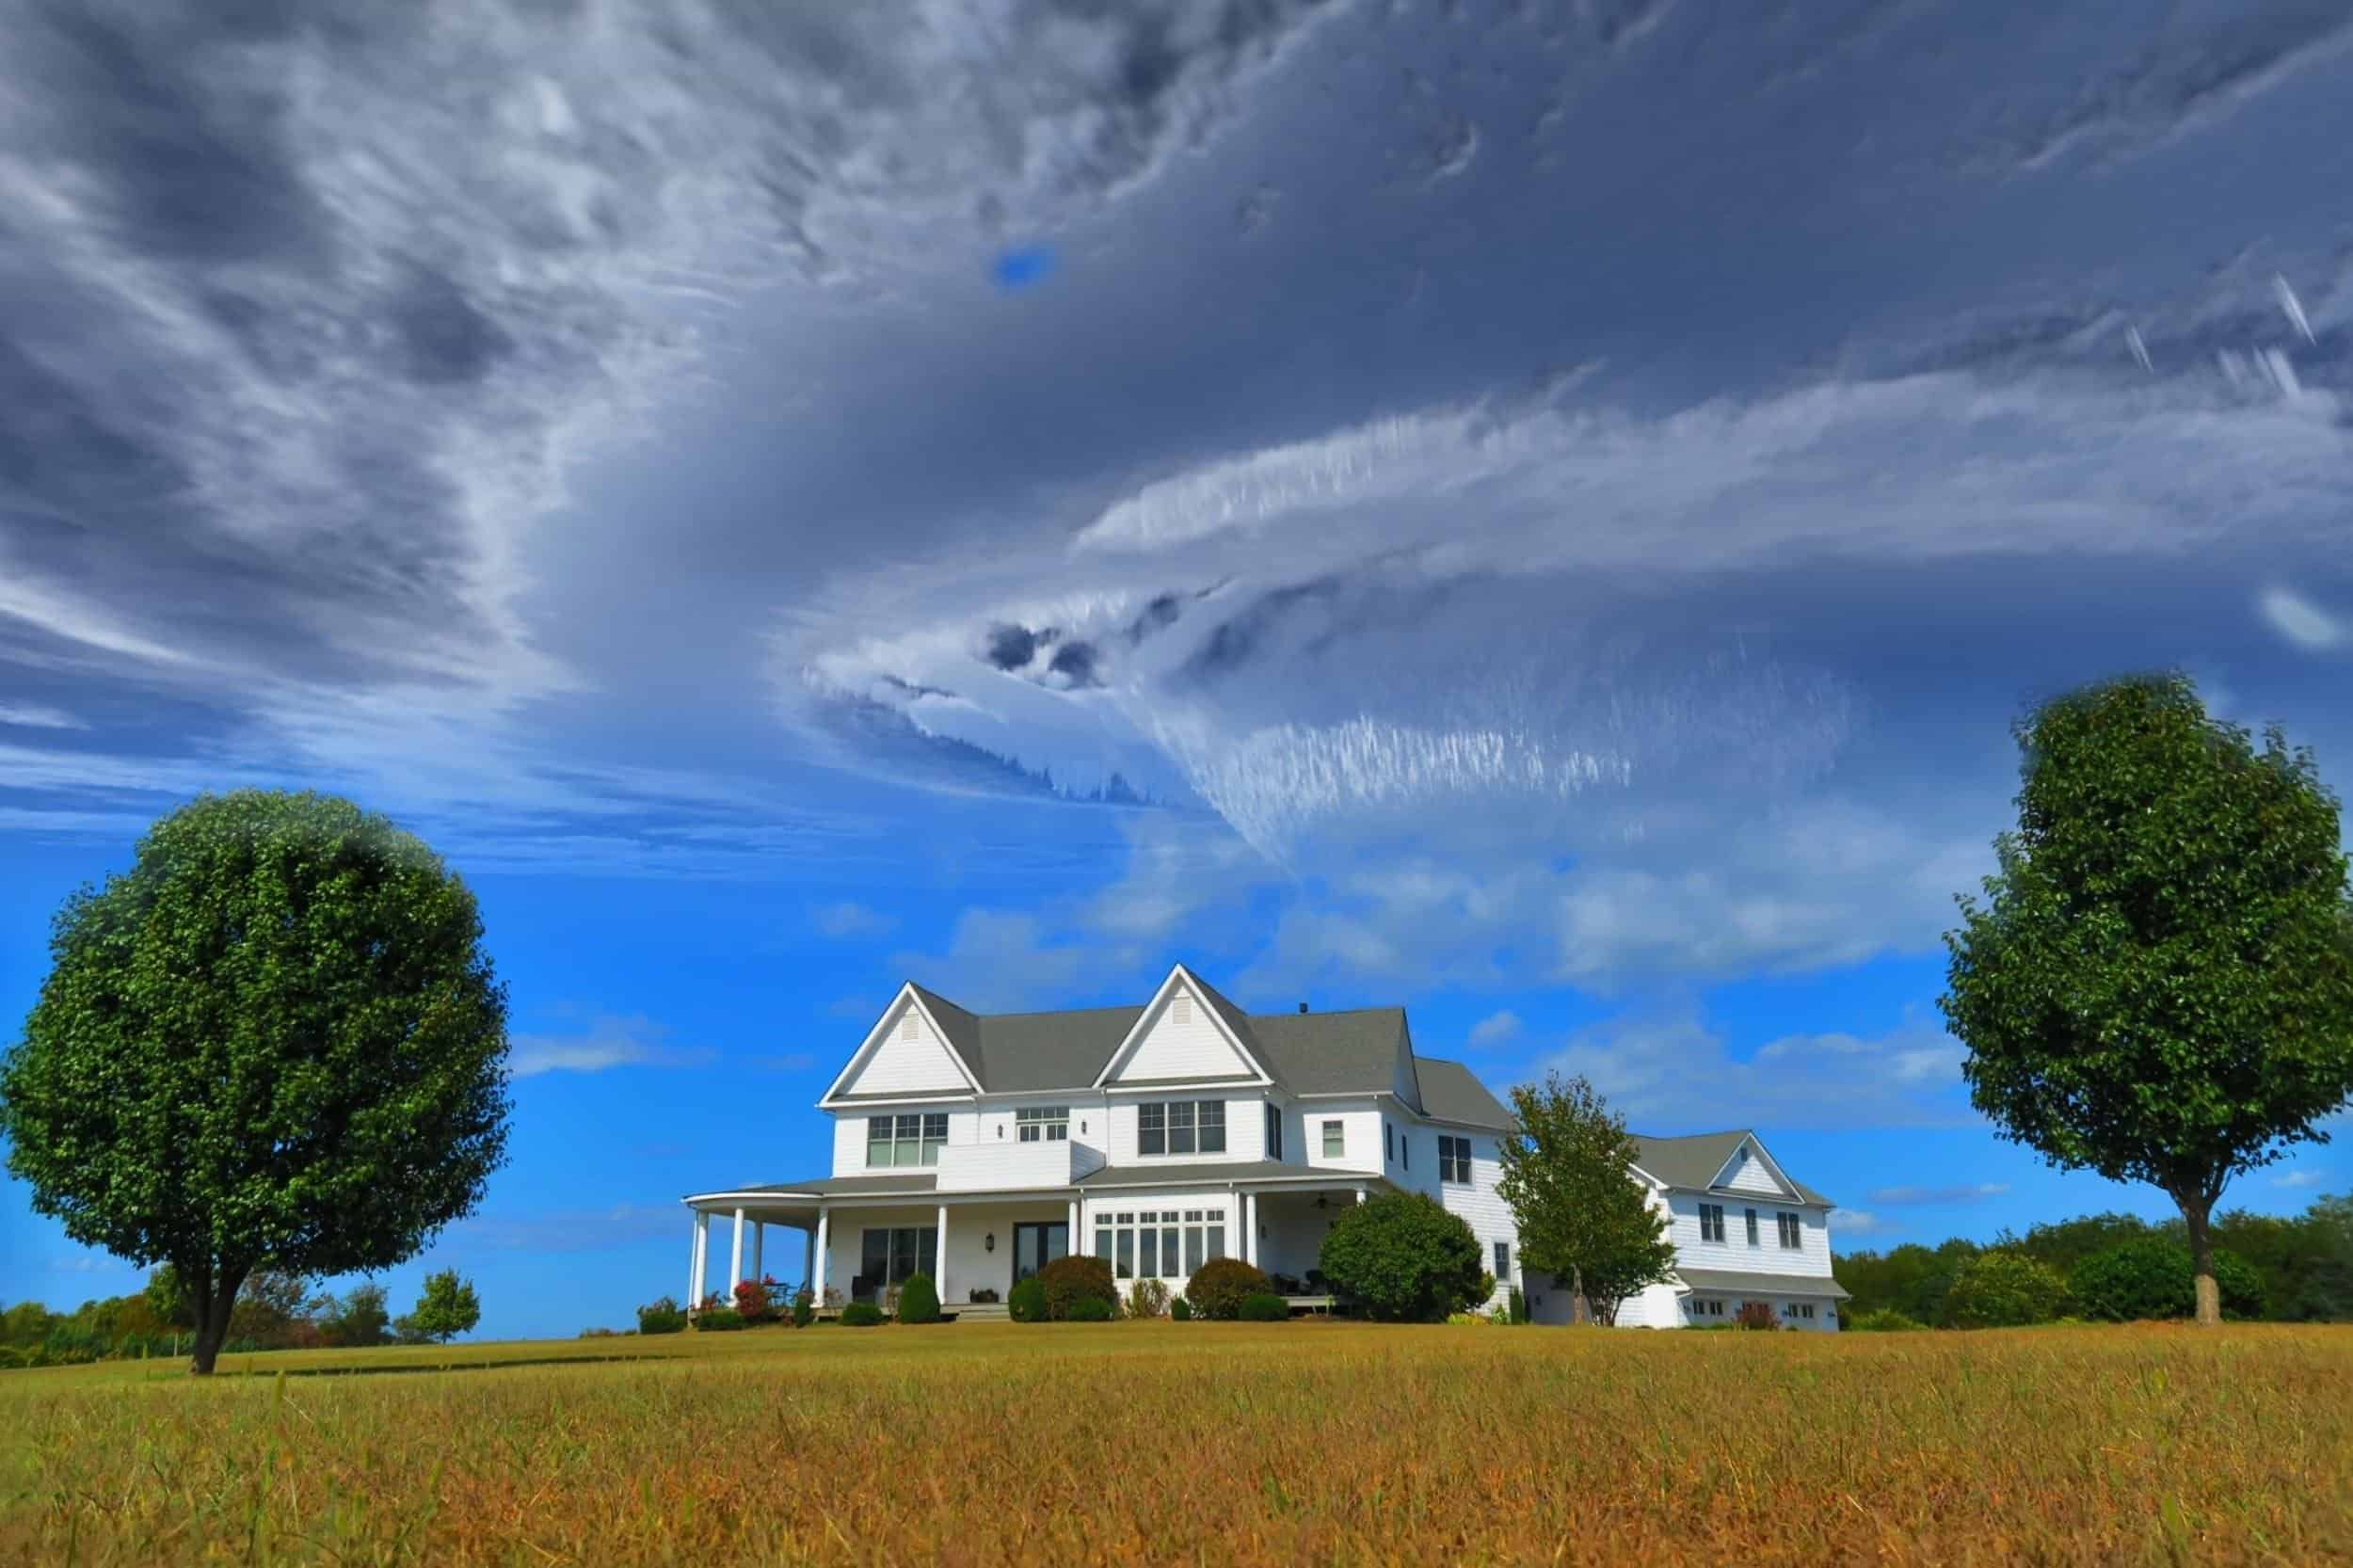 How to properly protect your home from the unpredictable weather